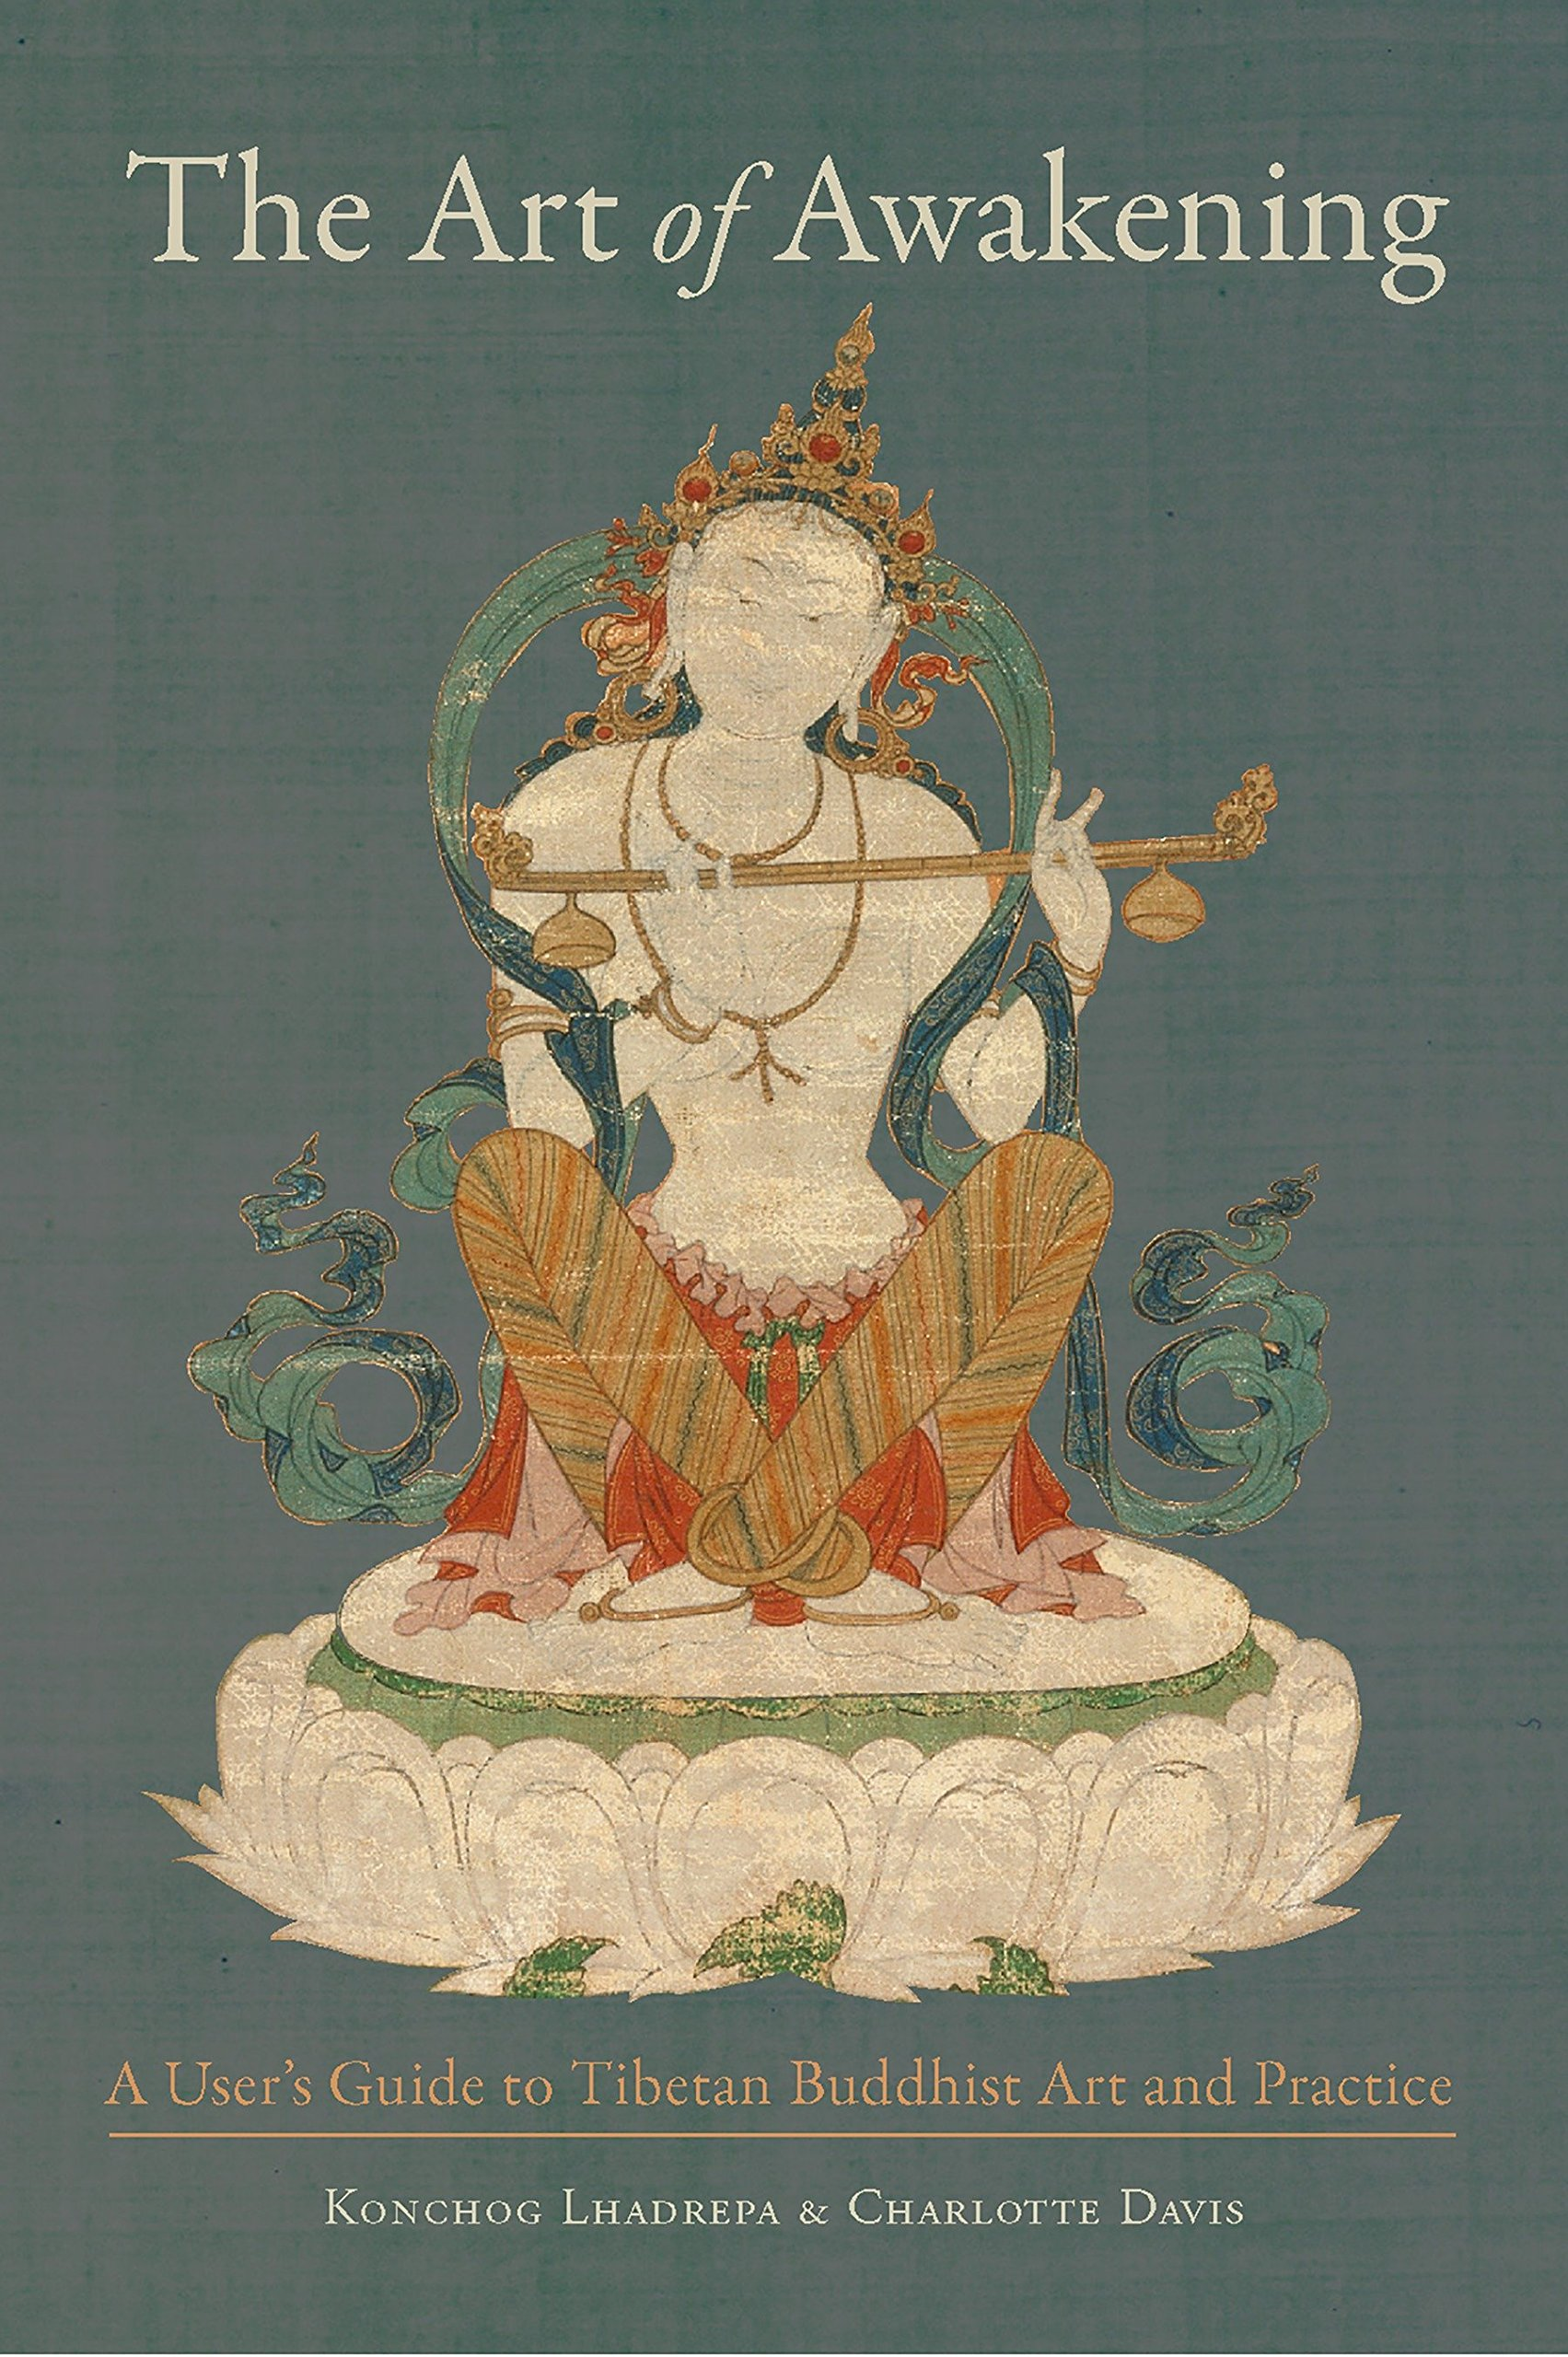 Download The Art of Awakening: A User's Guide to Tibetan Buddhist Art and Practice ebook